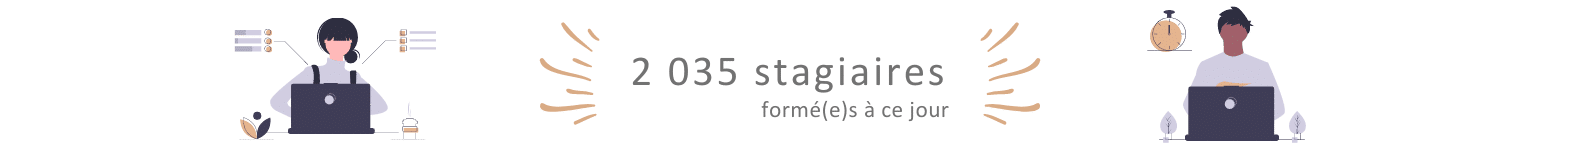 stagiaires CRC Formation